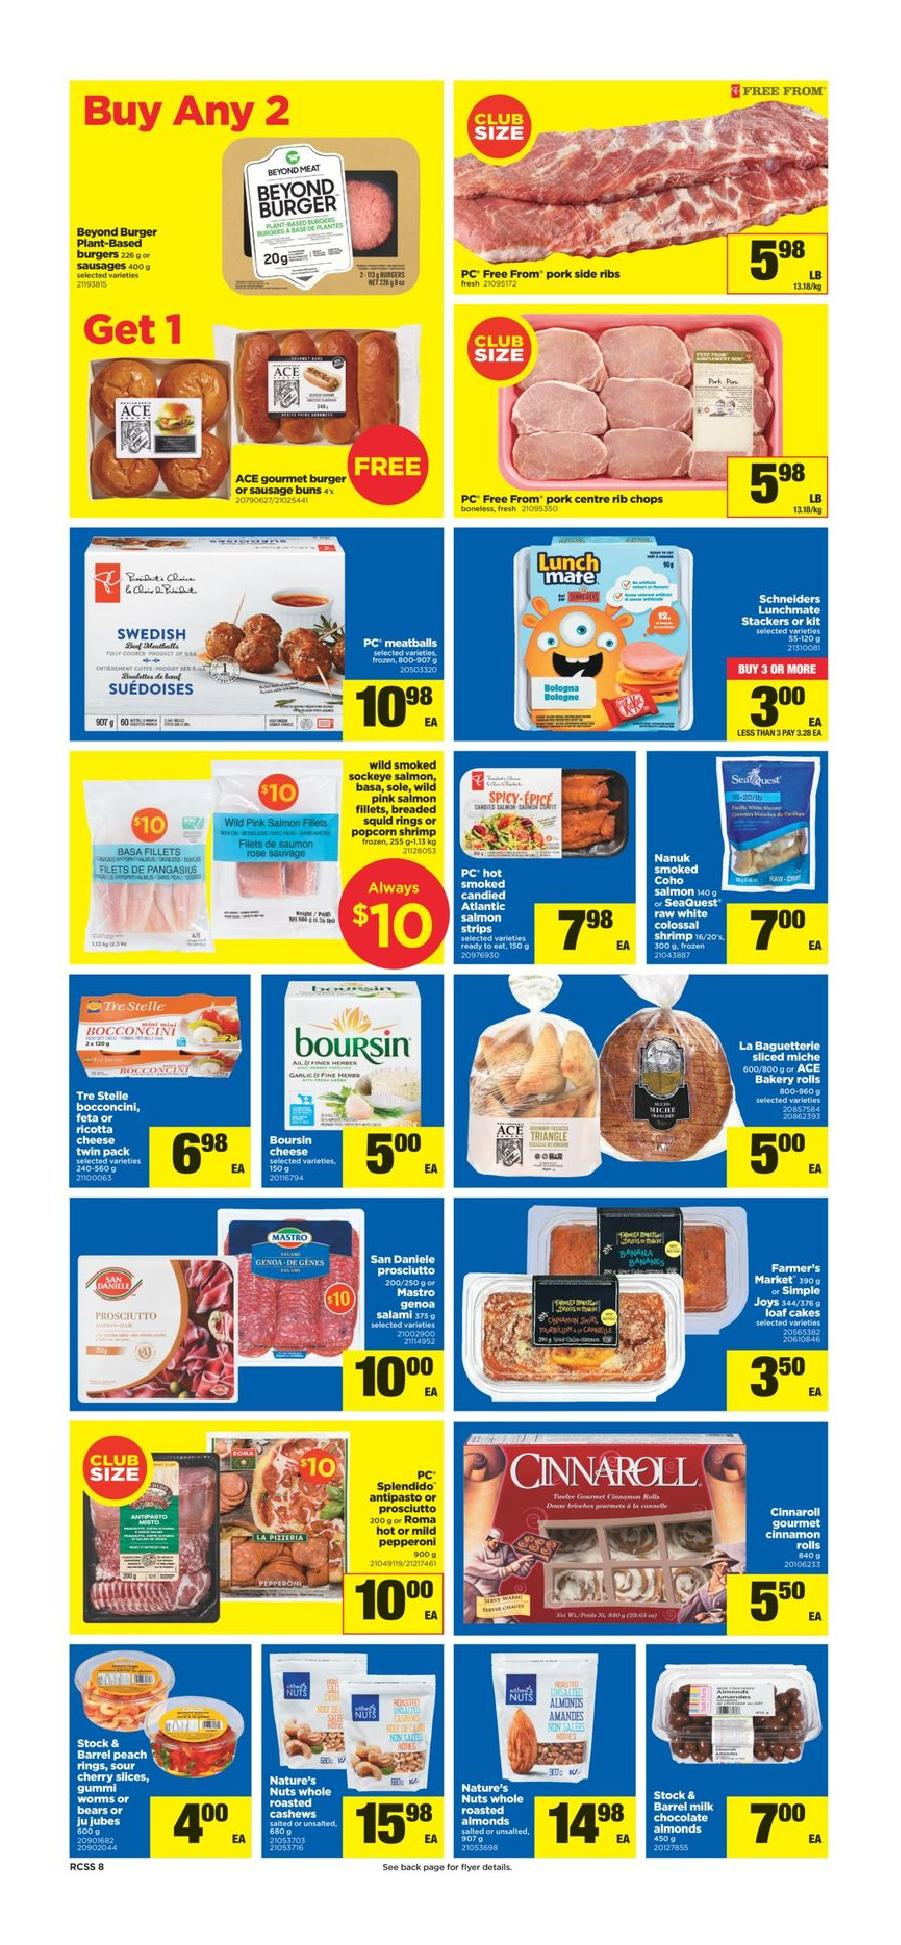 10 Superstore ON Flyer May 20 May 26 2021